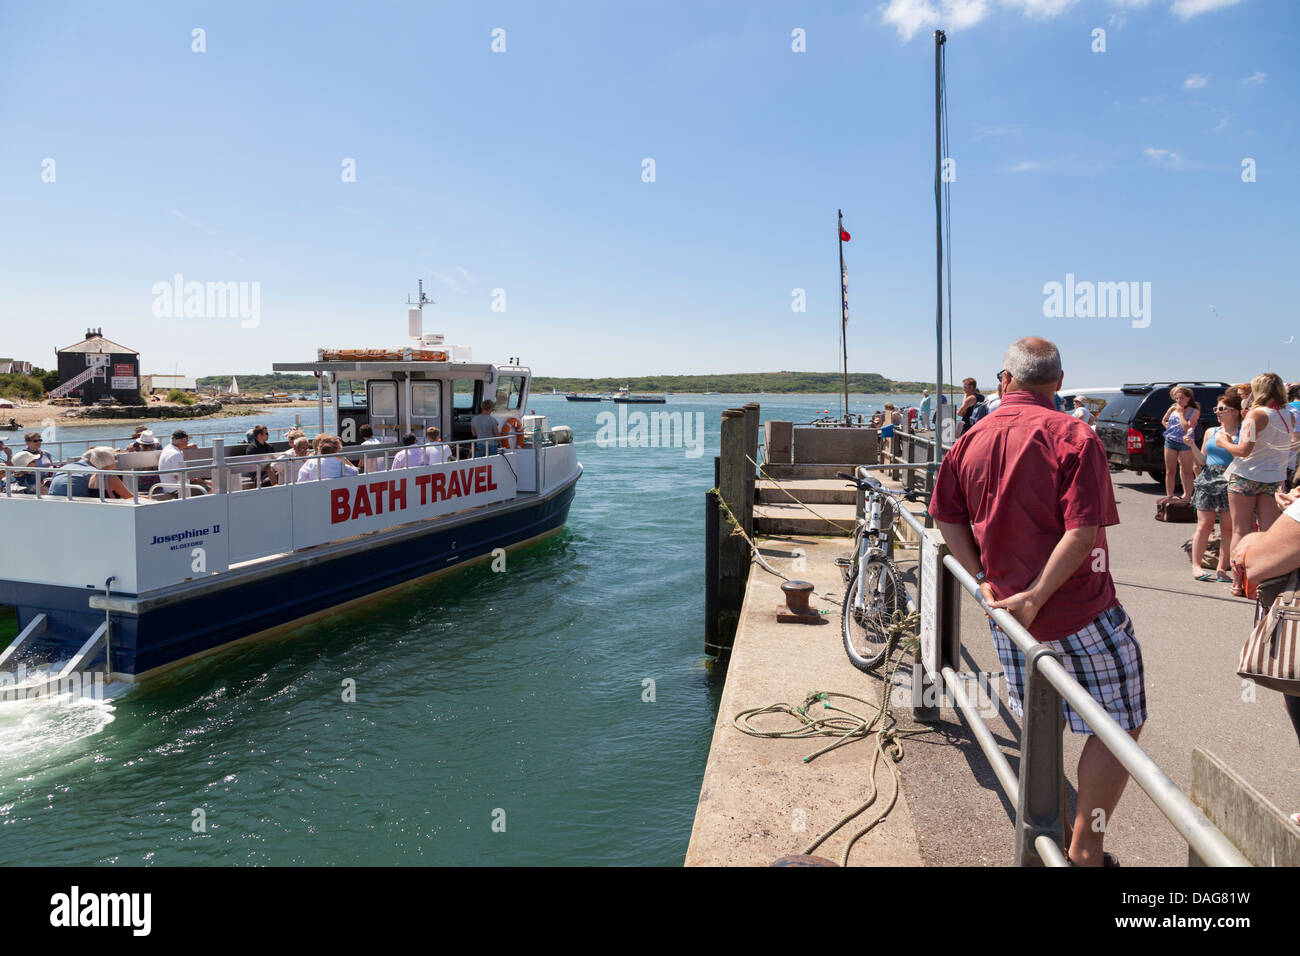 Mudeford to Hengistbury Head ferry arriving at the quay. - Stock Image